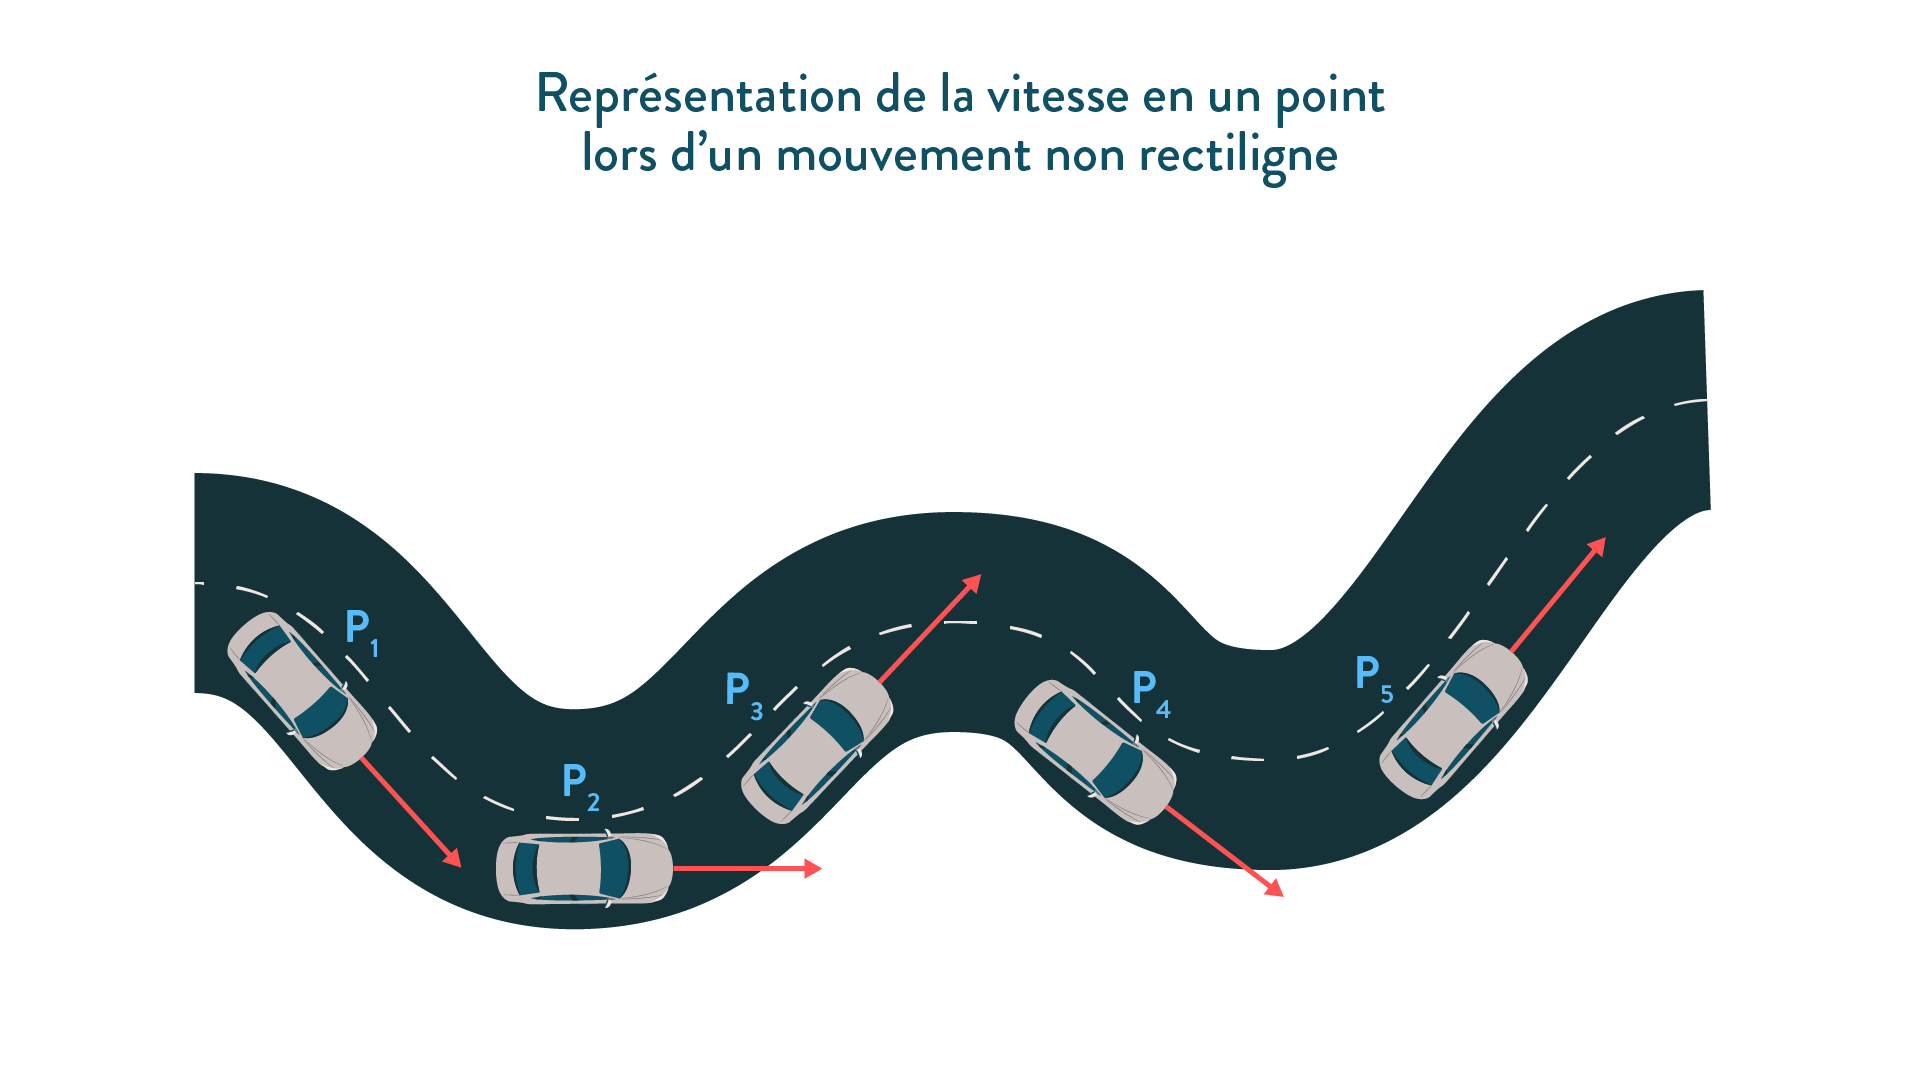 La vitesse en un point lors d'un mouvement non rectiligne